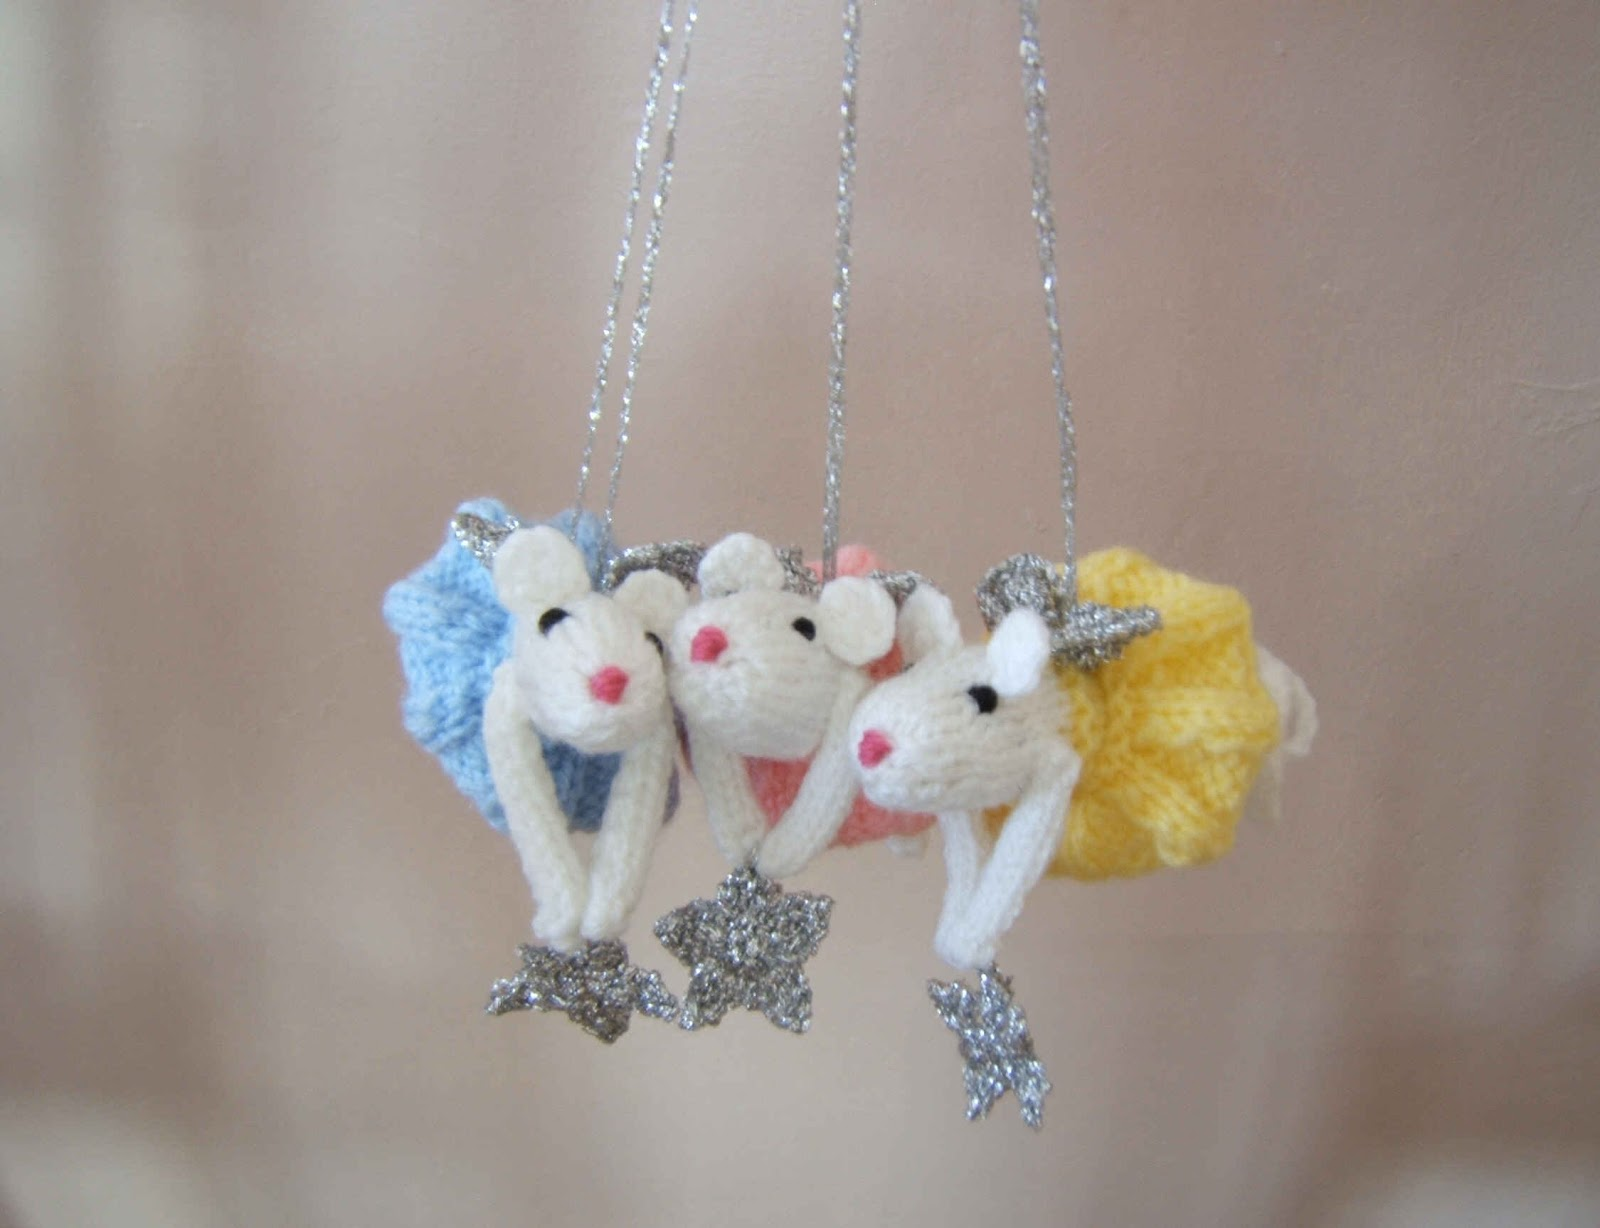 Knitting Patterns For Christmas Mice : A little bit of everything: SOLD Knitted White Christmas Fairy Mice